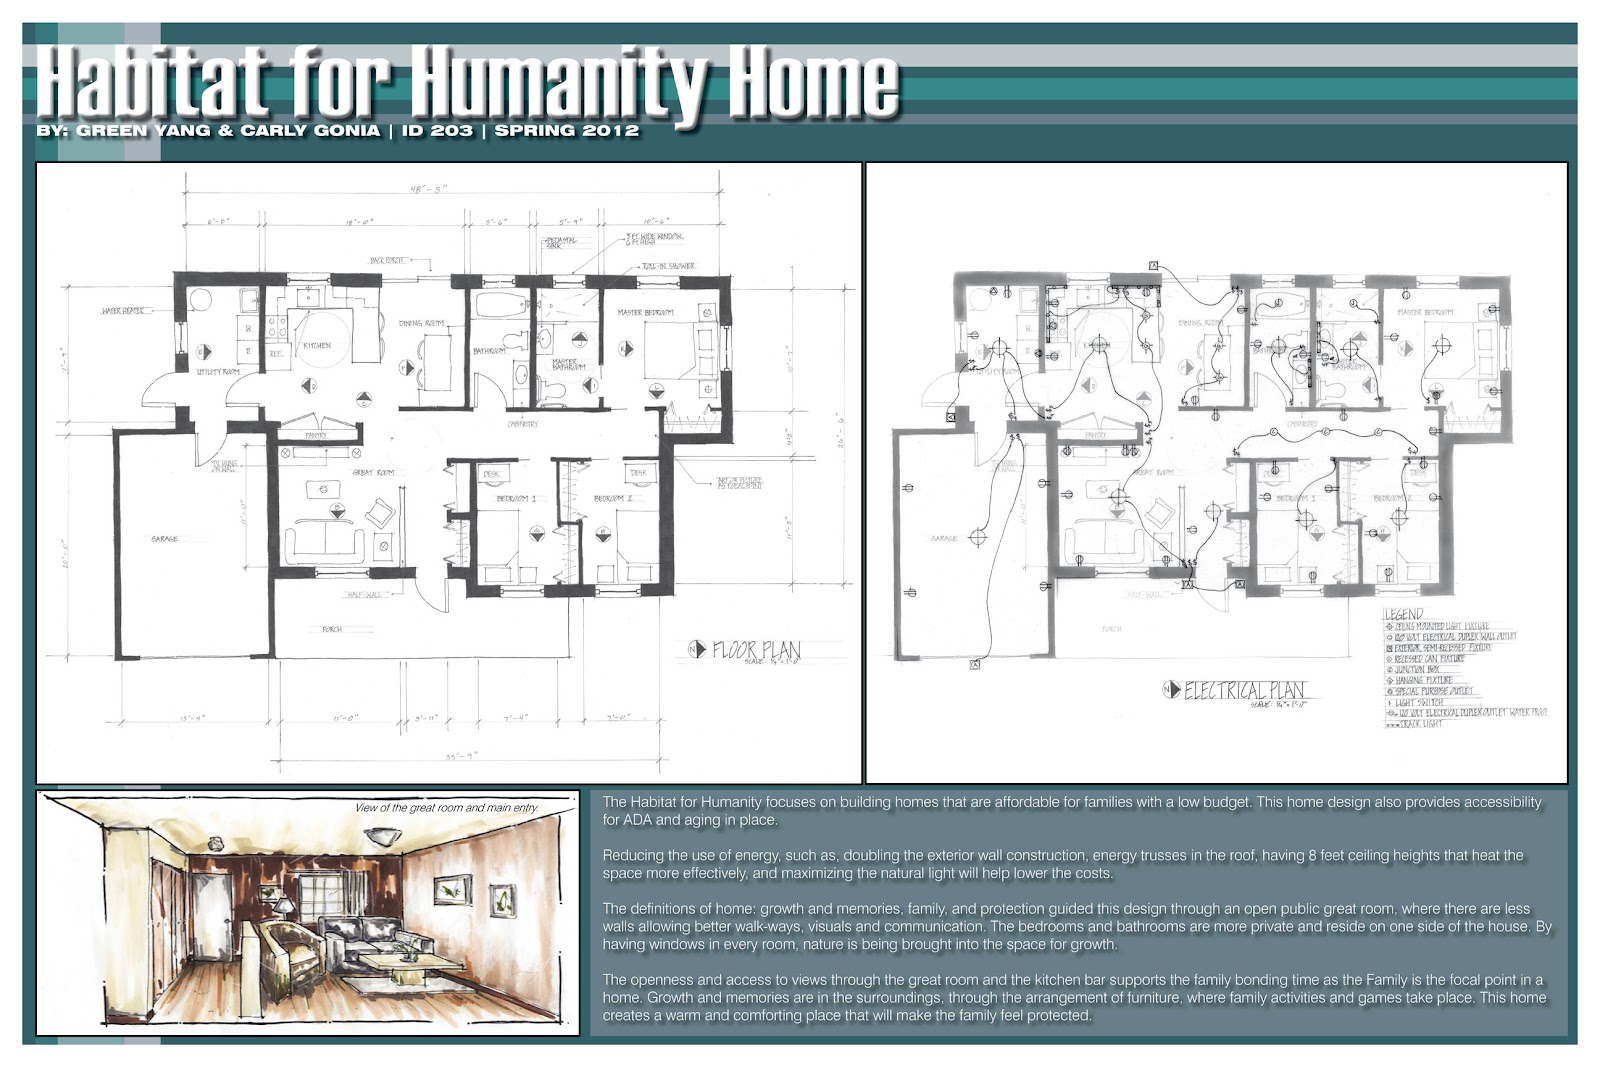 Carly gonia habitat for humanity for Habitat for humanity house plans